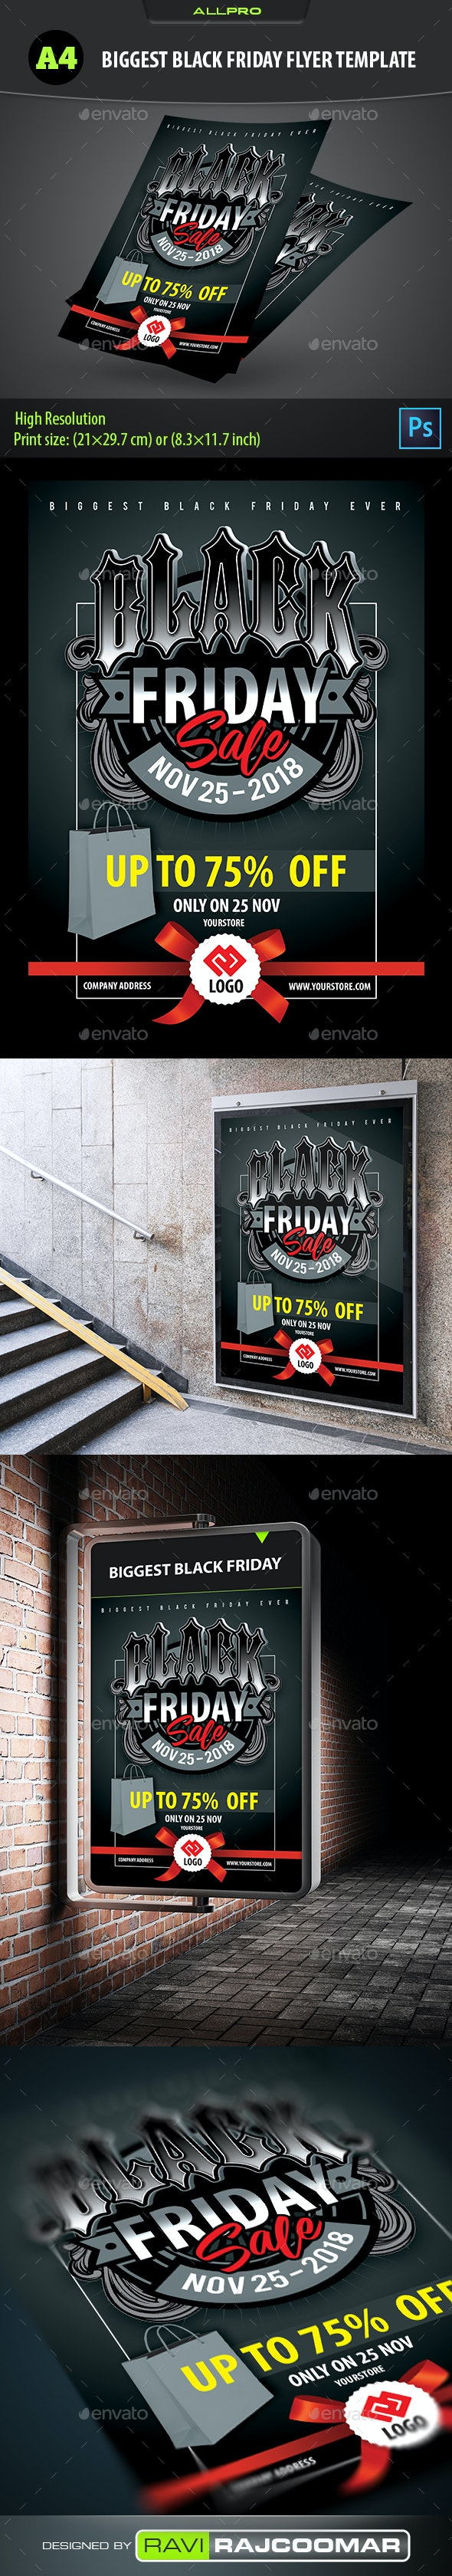 Biggest Black Friday Flyer Template - Flyers Print Templates